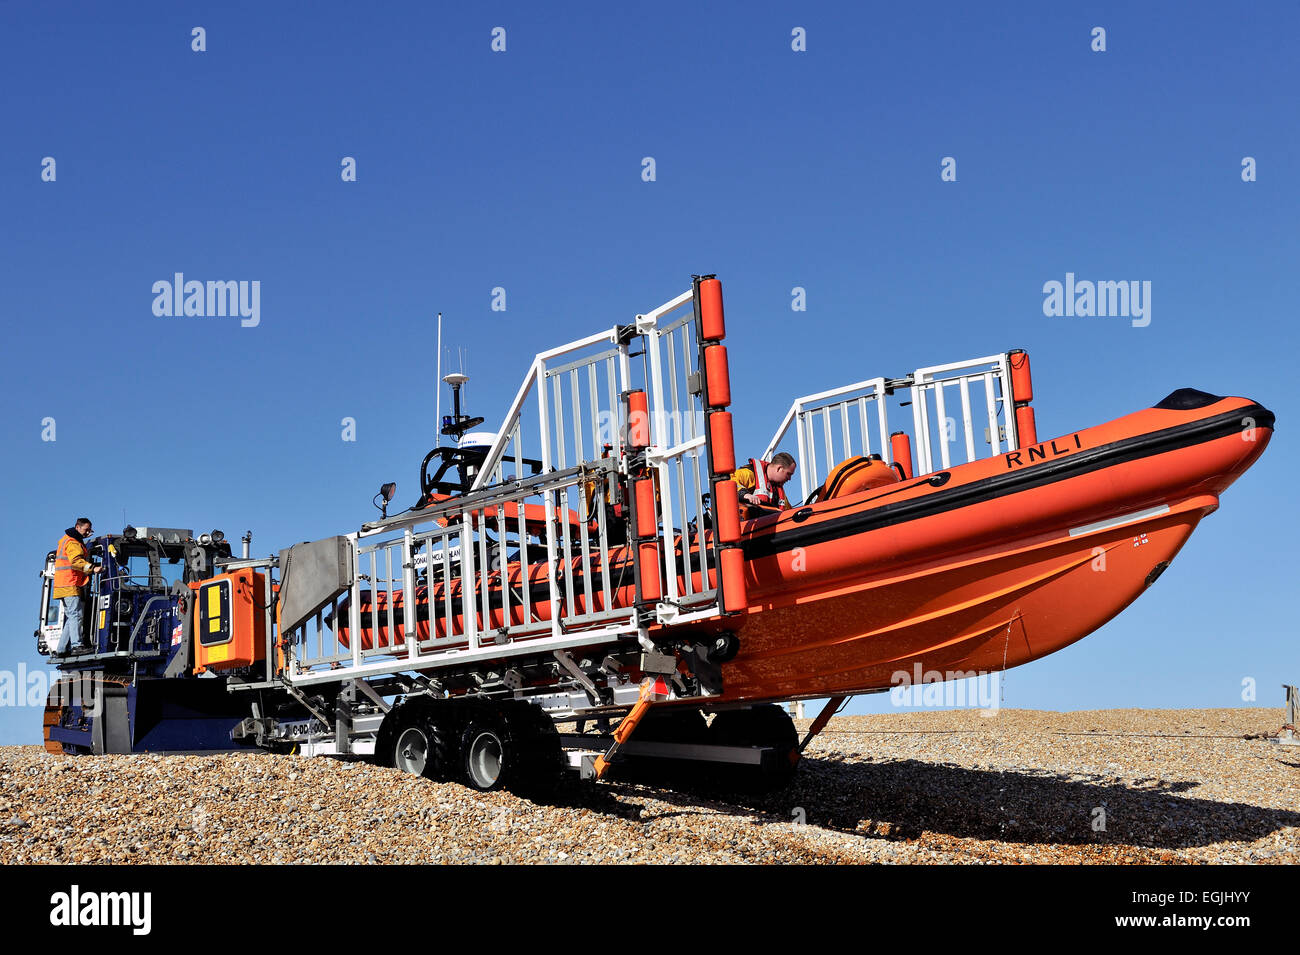 tractor retrieving lifeboat from the sea Stock Photo